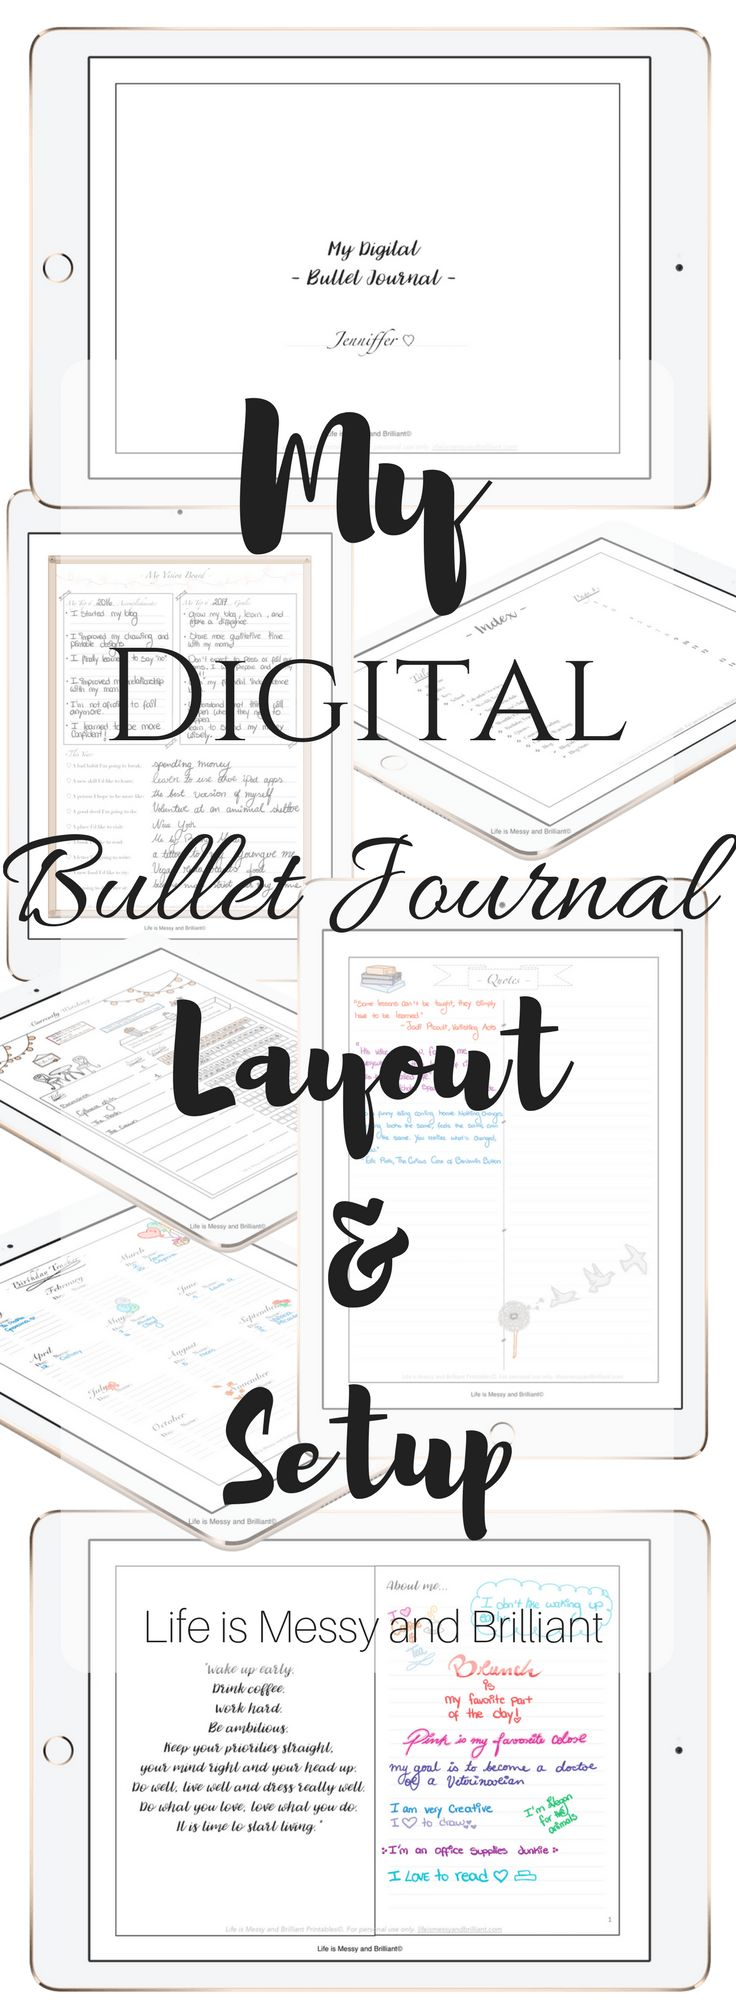 The dress journal of vision - My Digital Bullet Journal Layout And Setup